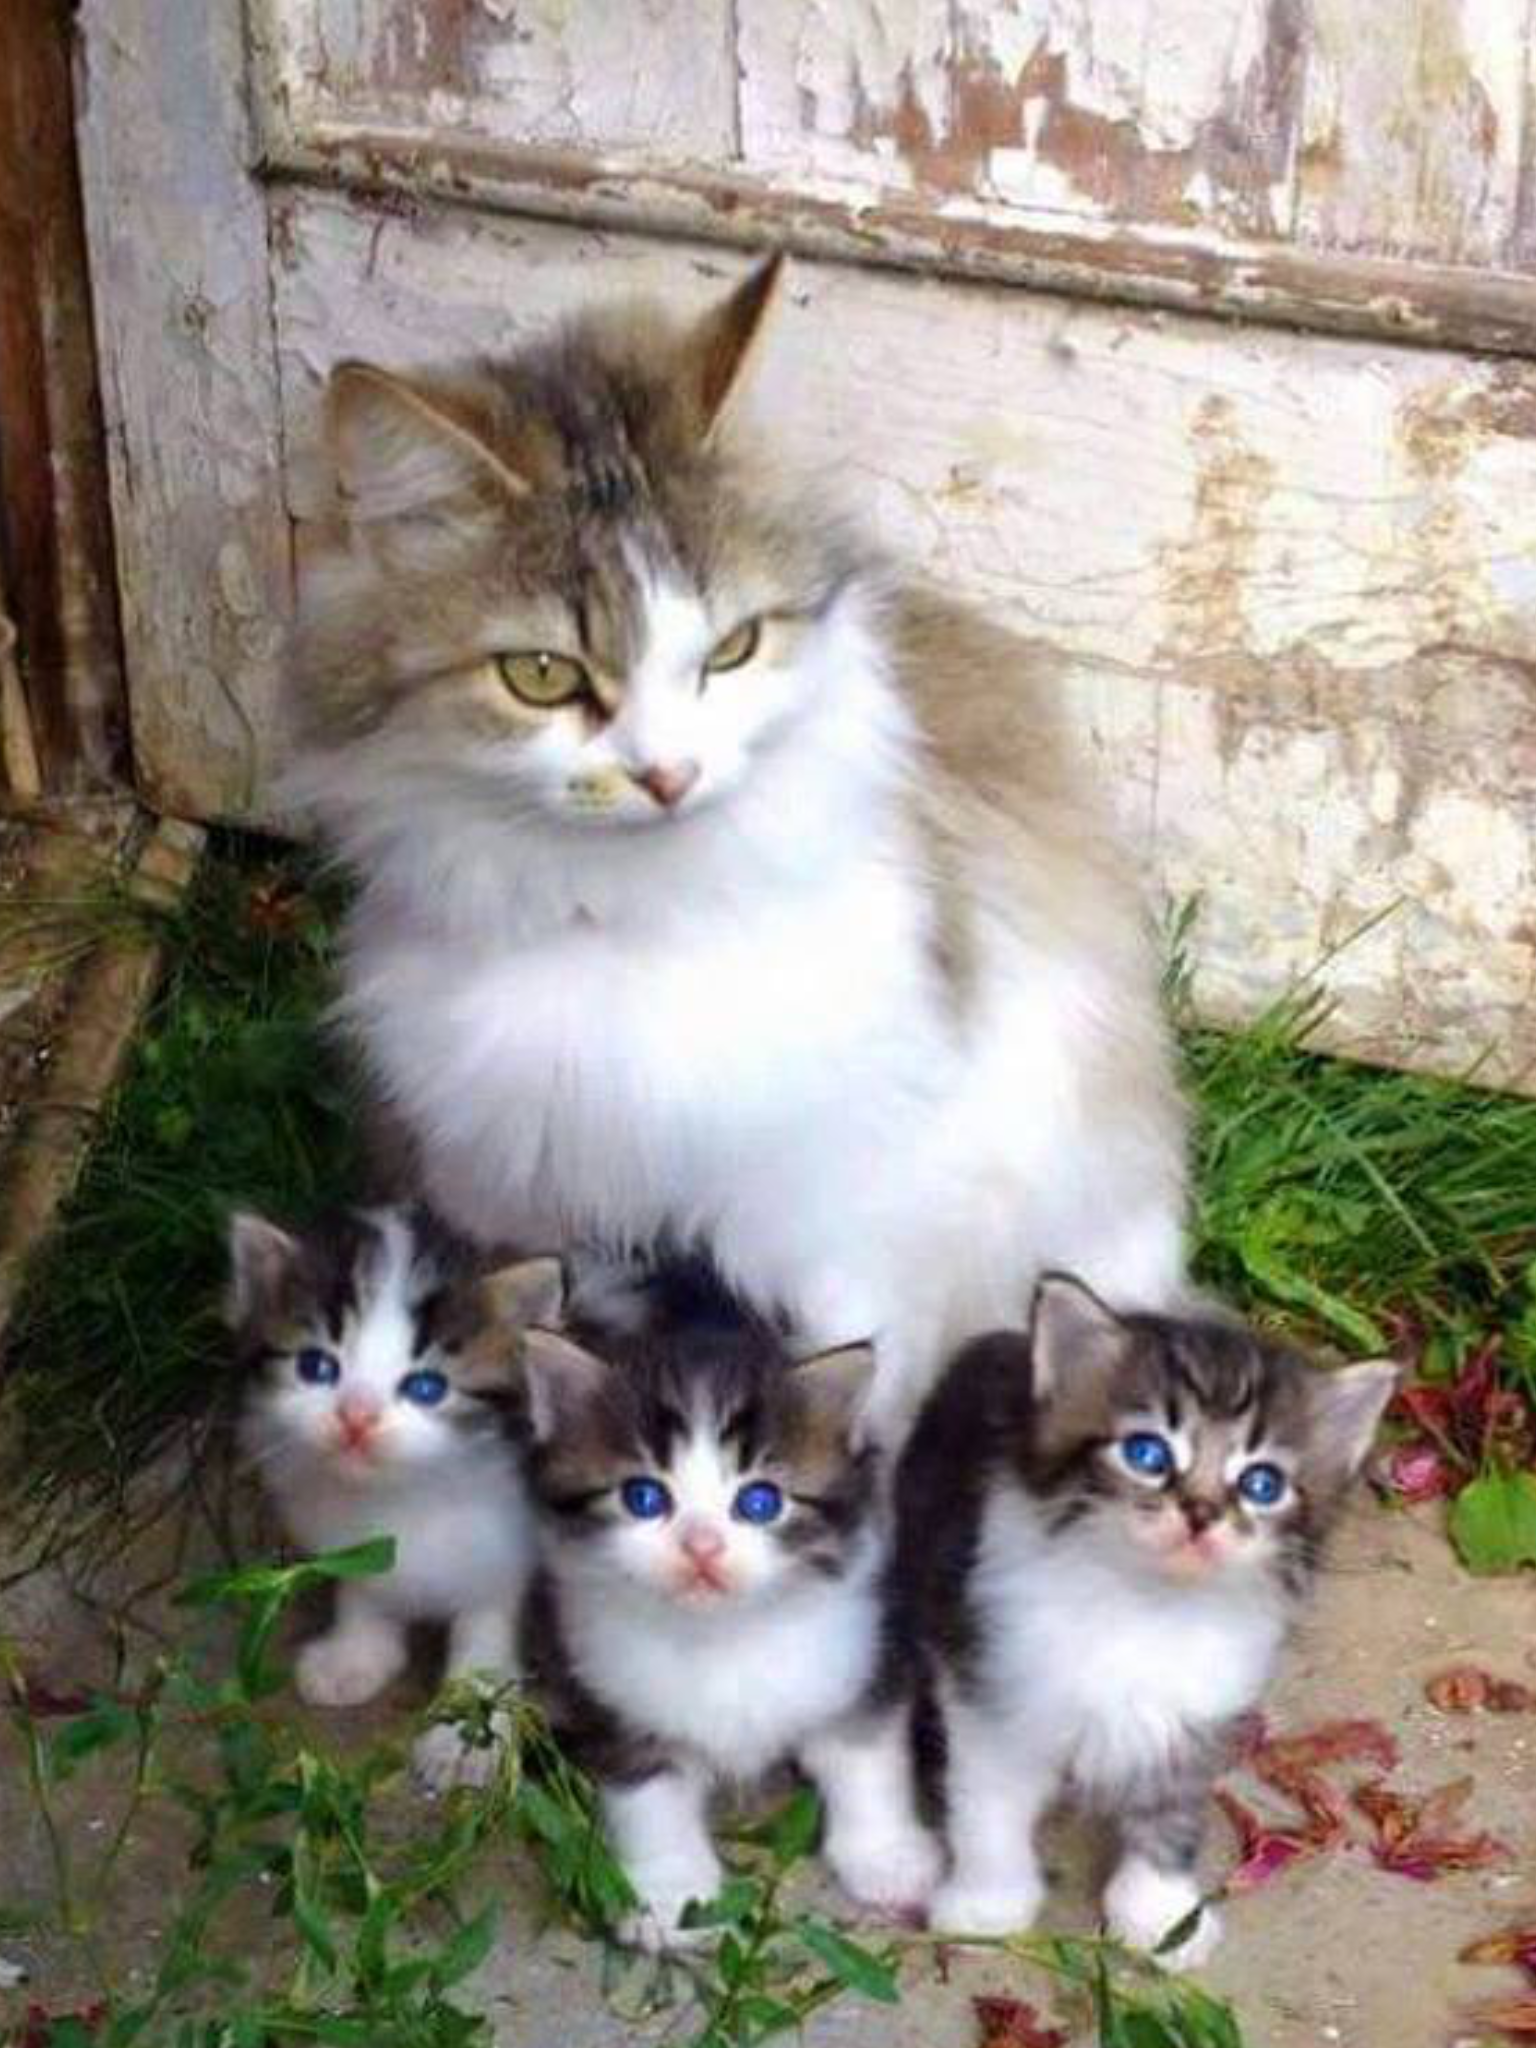 Mother S Name Lillybloom Kittens Names Orchid Daisy And Rose Ages Mom 20 Moons Kits 3 Moons Personalitys Mom Loving Cute Cats Cute Animals Beautiful Cats